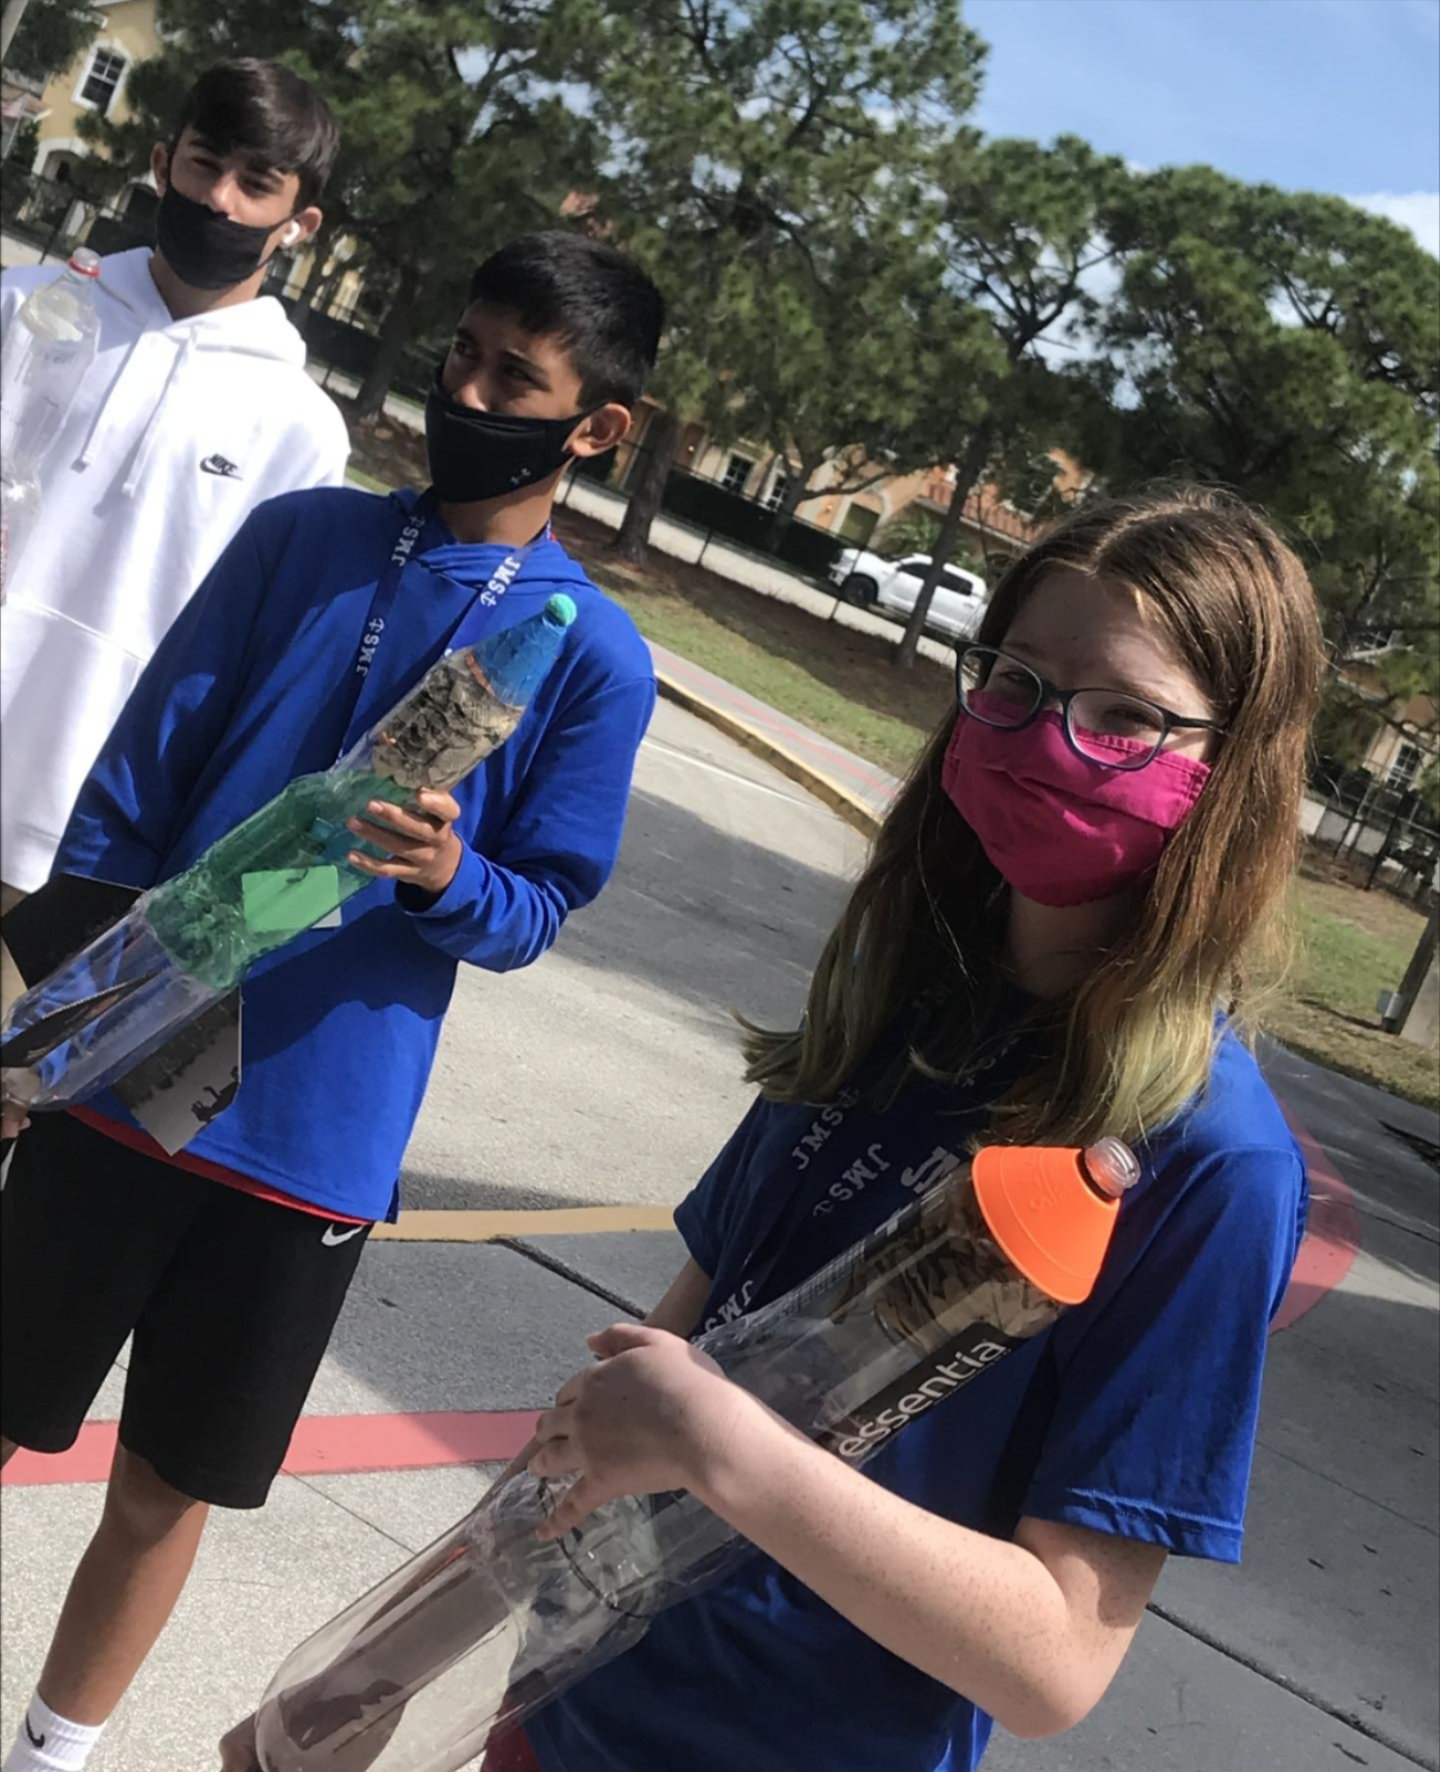 Female student from Jupiter MS Engineering Academy ready to launch the rocket she built through the STEM@Work-granted program